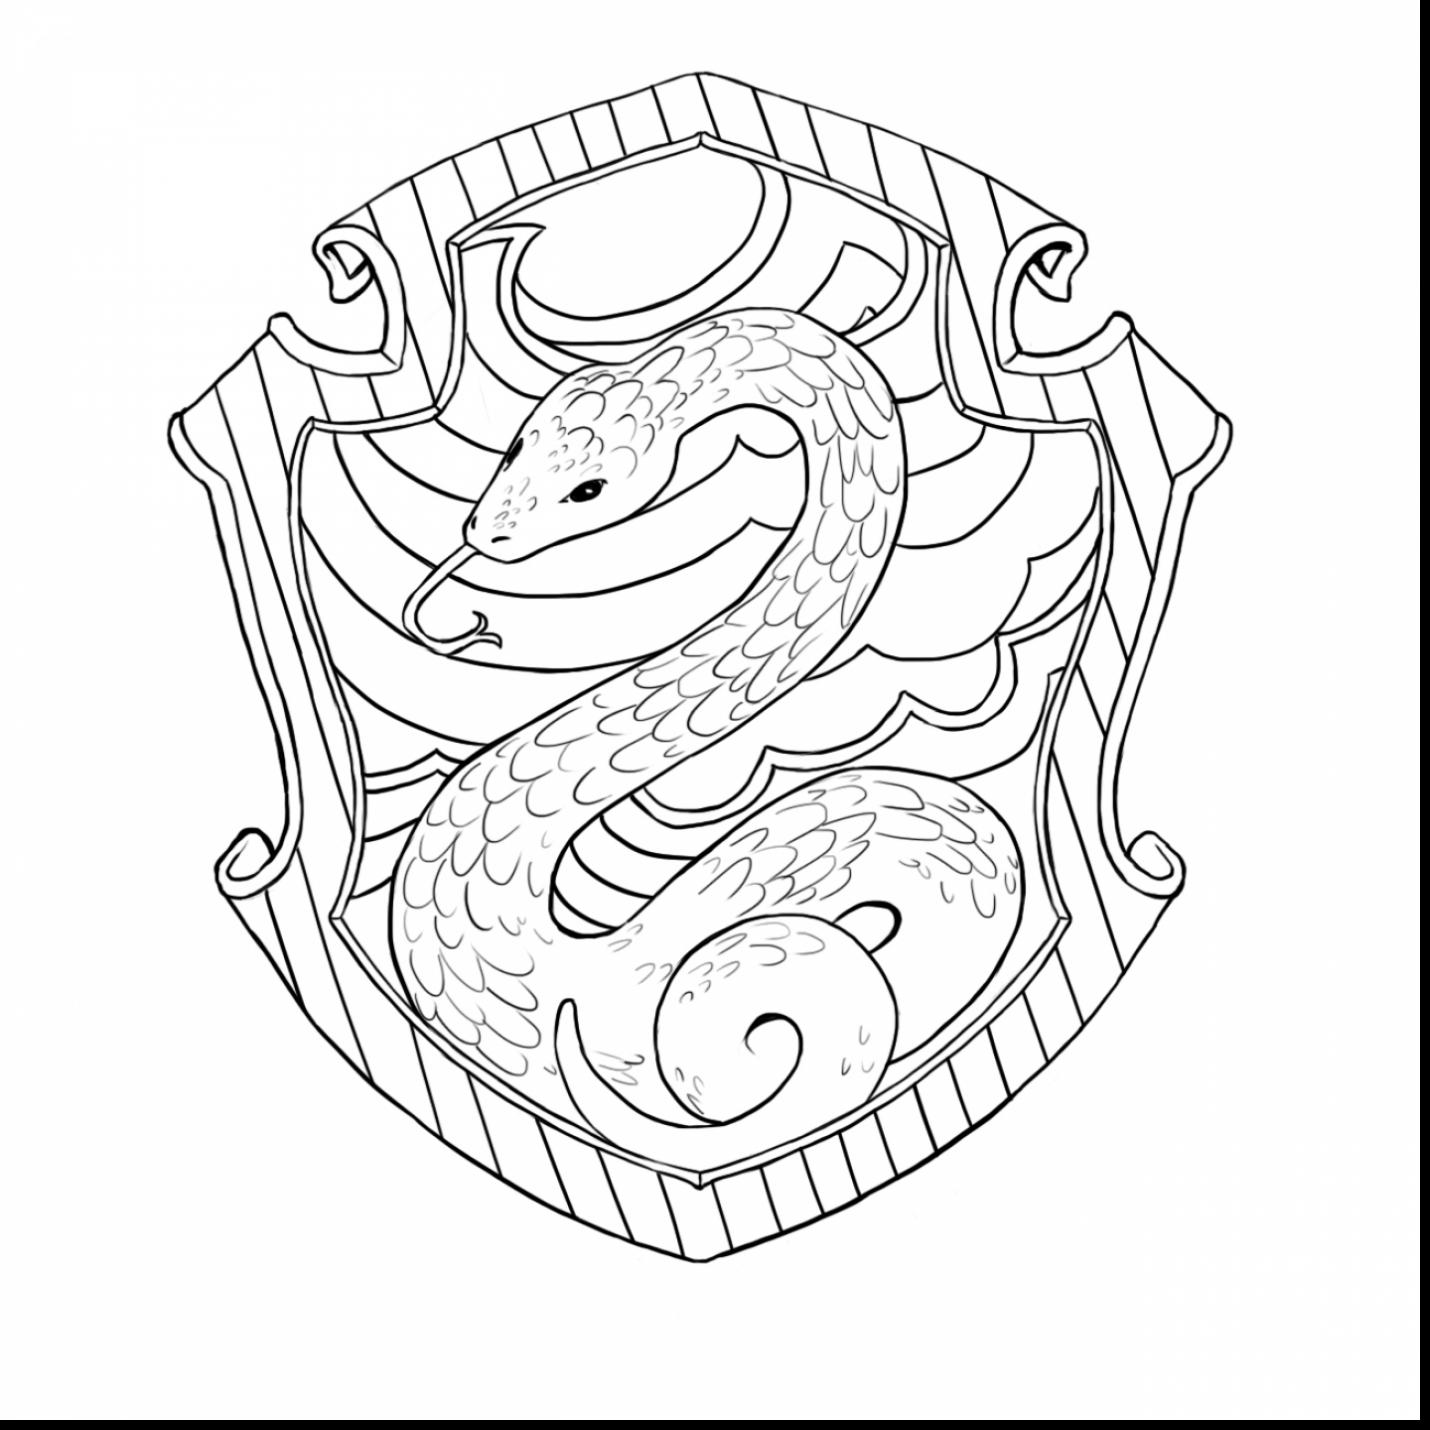 1430x1430 Unsurpassed Hogwarts Houses Coloring Pages Har